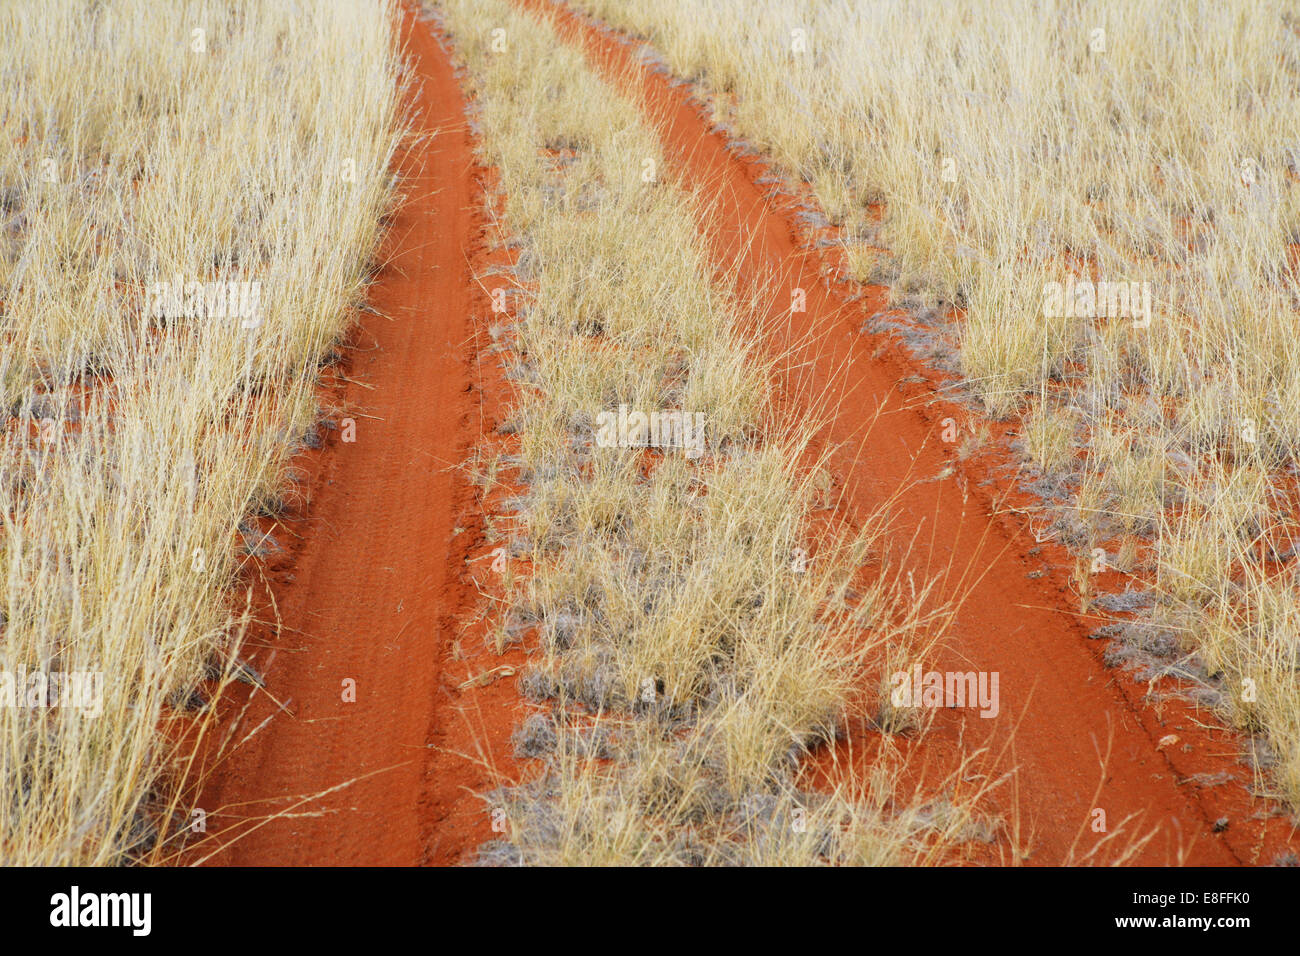 Tire tracks through orange sand in desert, Namibia - Stock Image